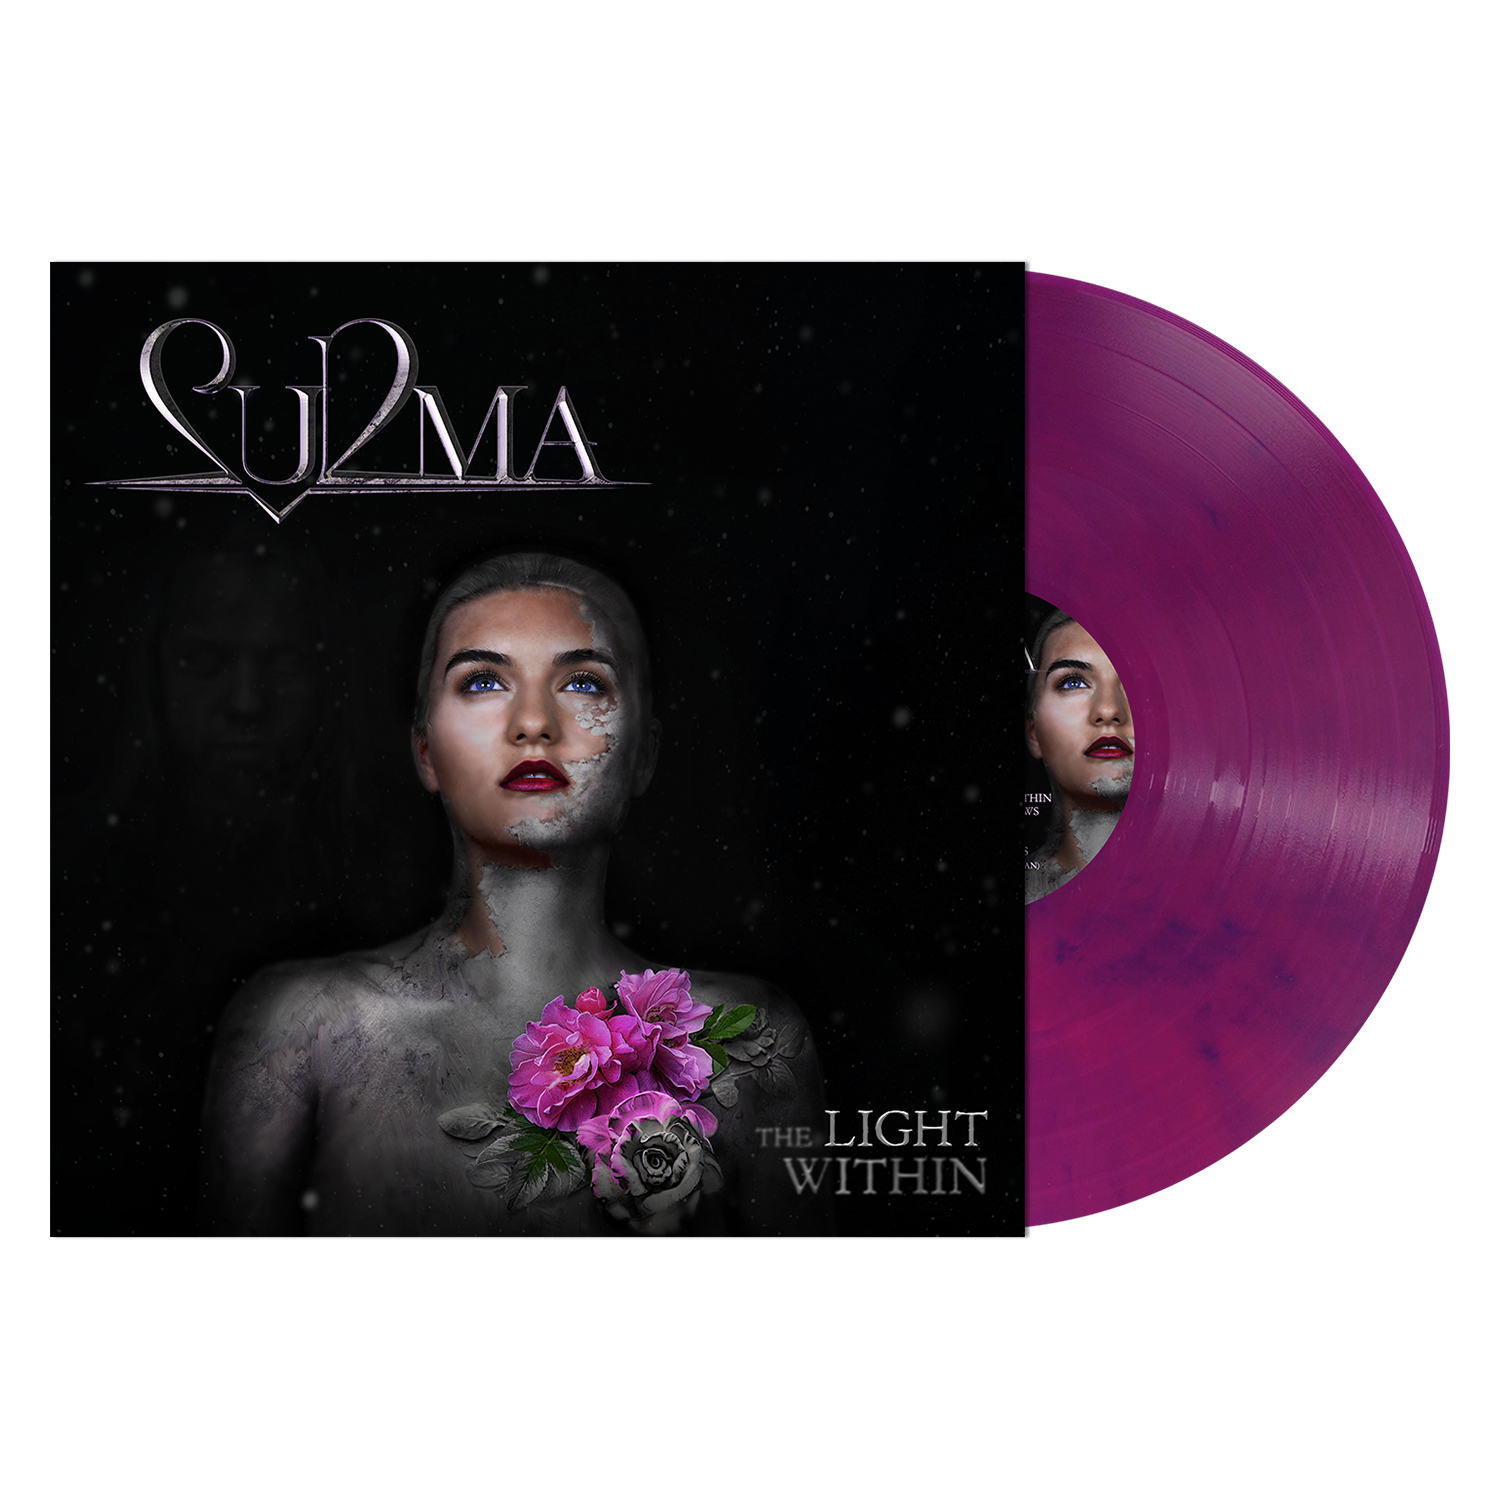 The Light Within (Violet Blue Vinyl)